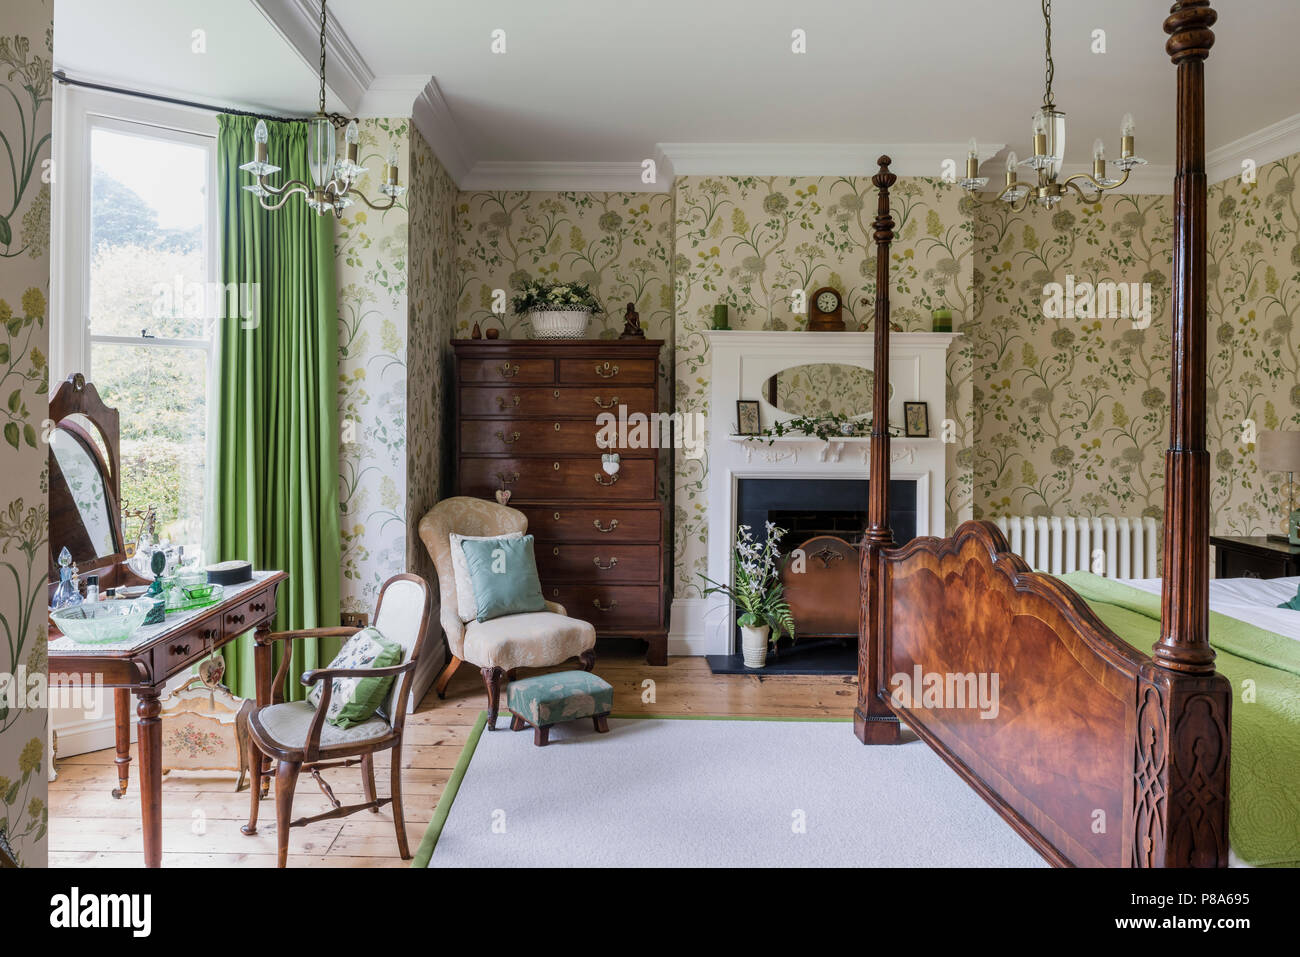 Antique wooden four-poster bed in Regency bedroom with tallboy and dressing table Stock Photo